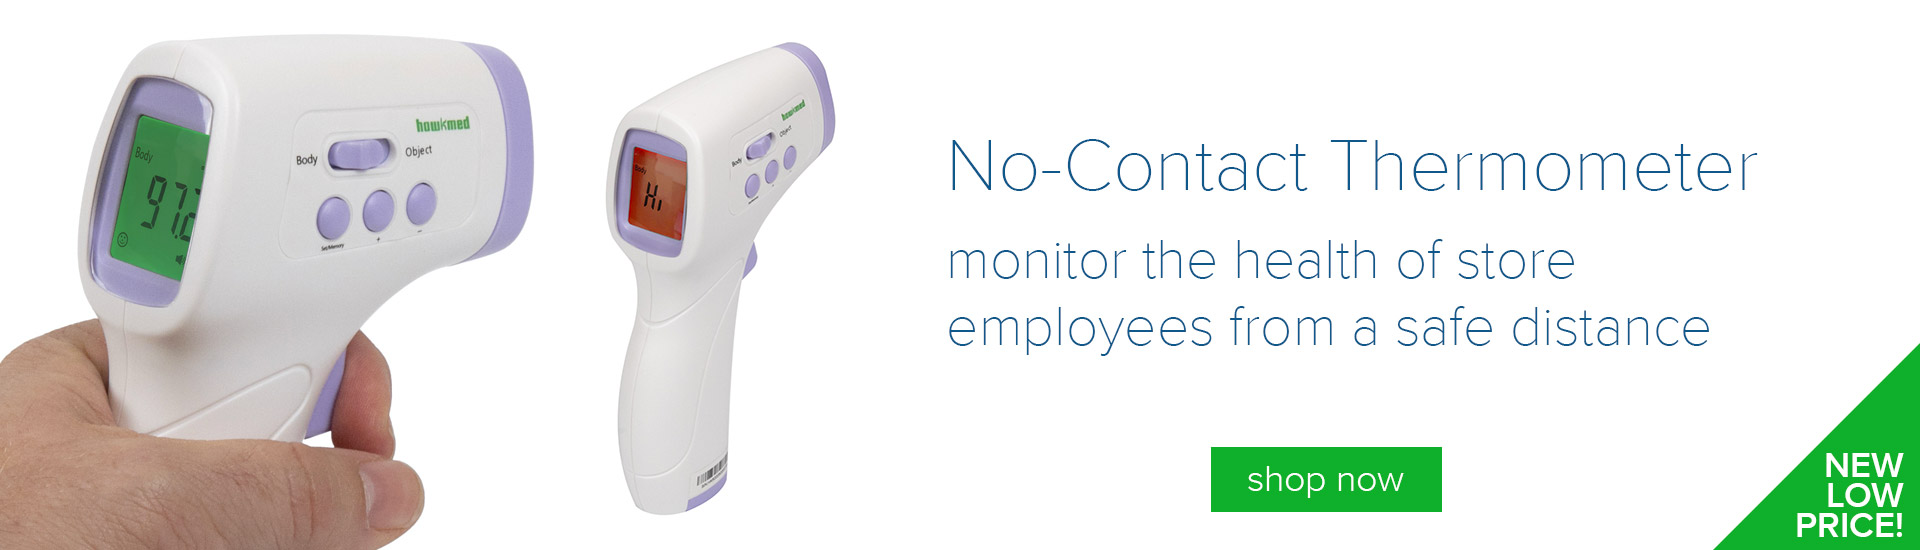 No-Contact Thermometers